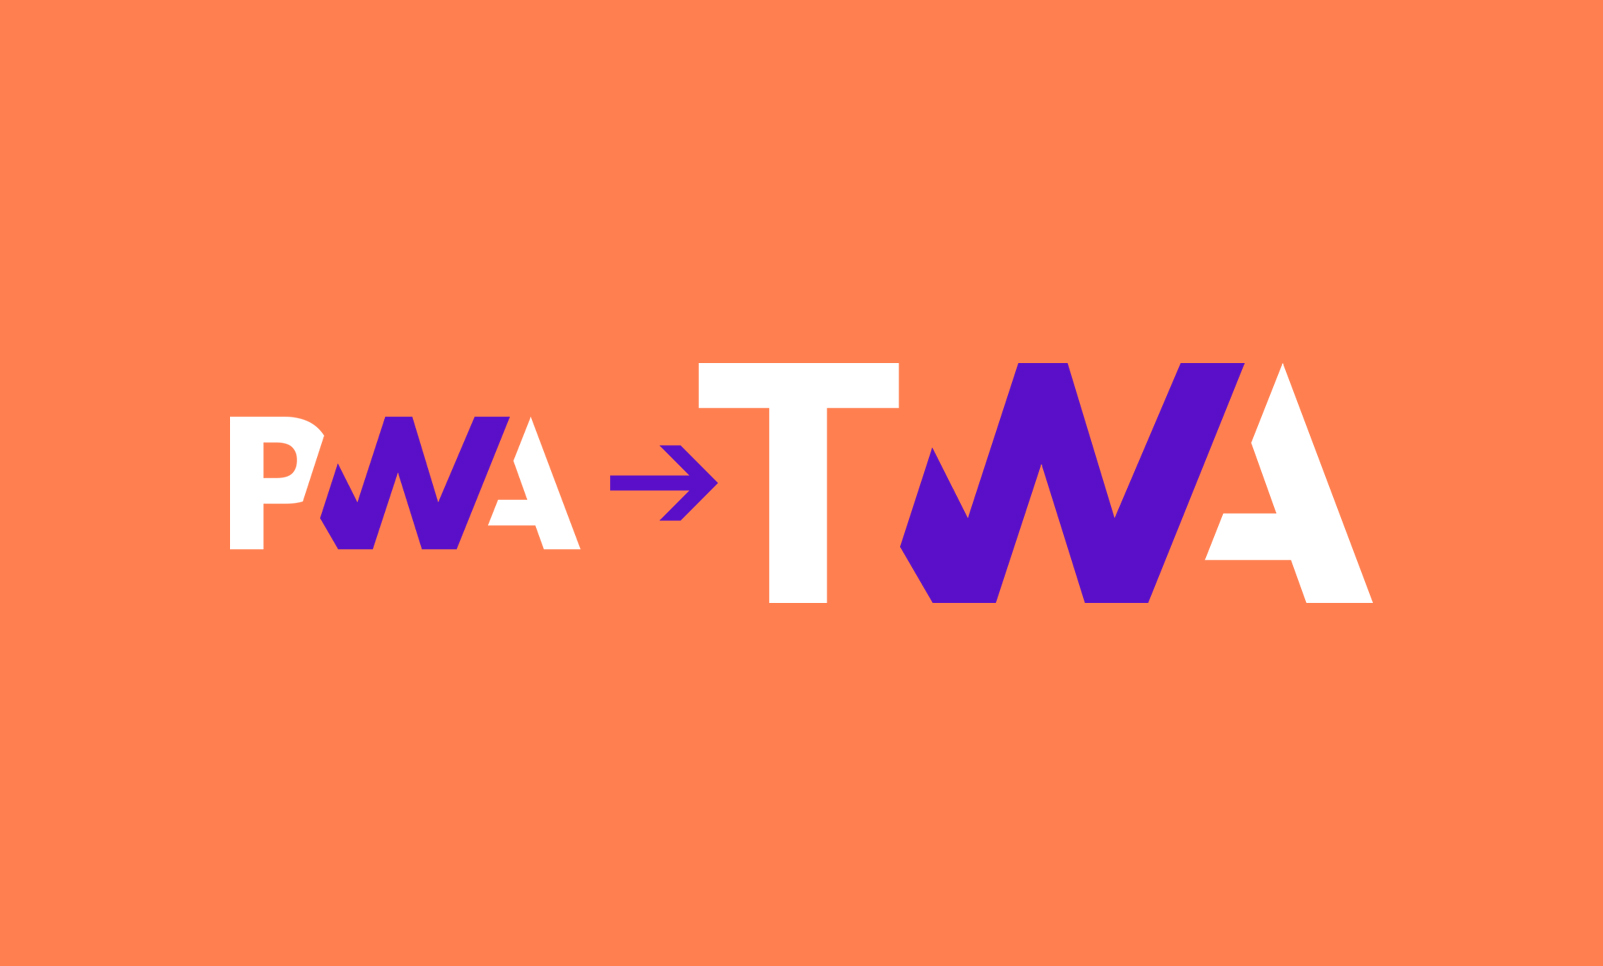 What are PWA and TWA